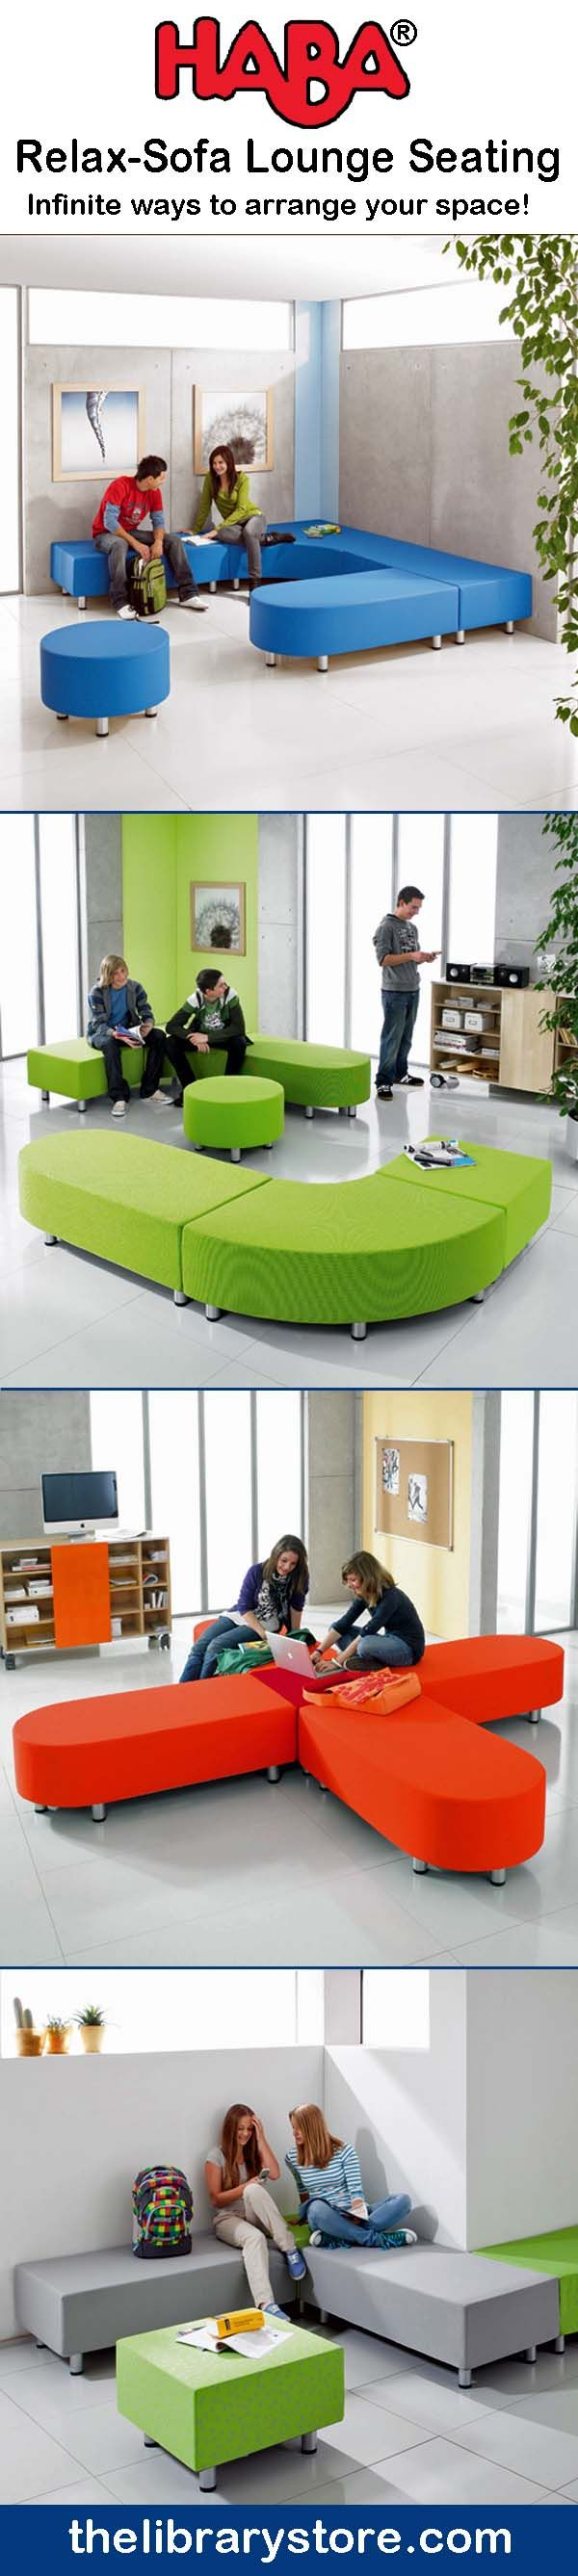 Flexible Teen Furniture!   HABA Relax   Sofa Lounge Seating Collection.